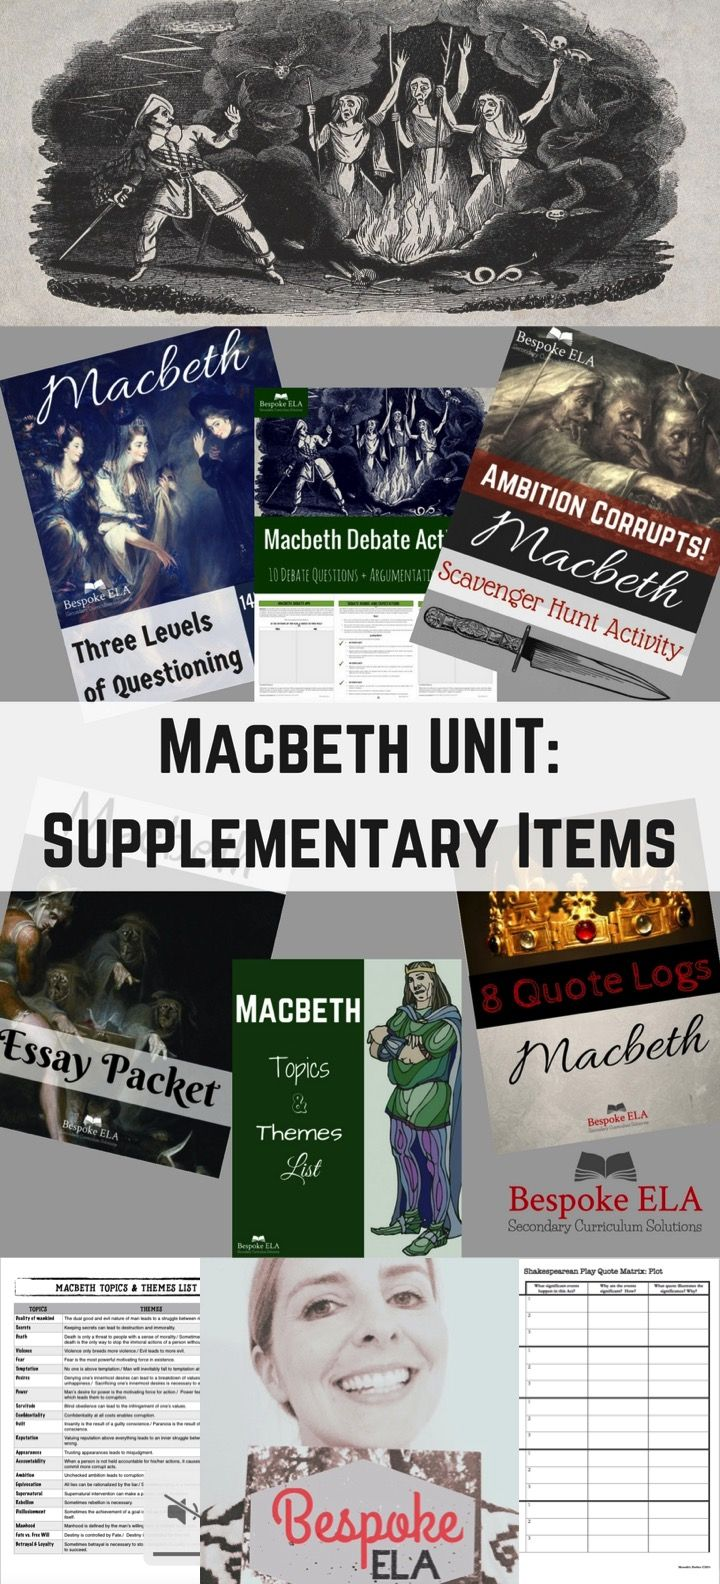 macbeth quotes analysis Macbeth - analysis of fear, free study guides and book notes including comprehensive chapter analysis, complete summary analysis, author biography information, character profiles, theme analysis, metaphor analysis, and top ten quotes on classic literature.